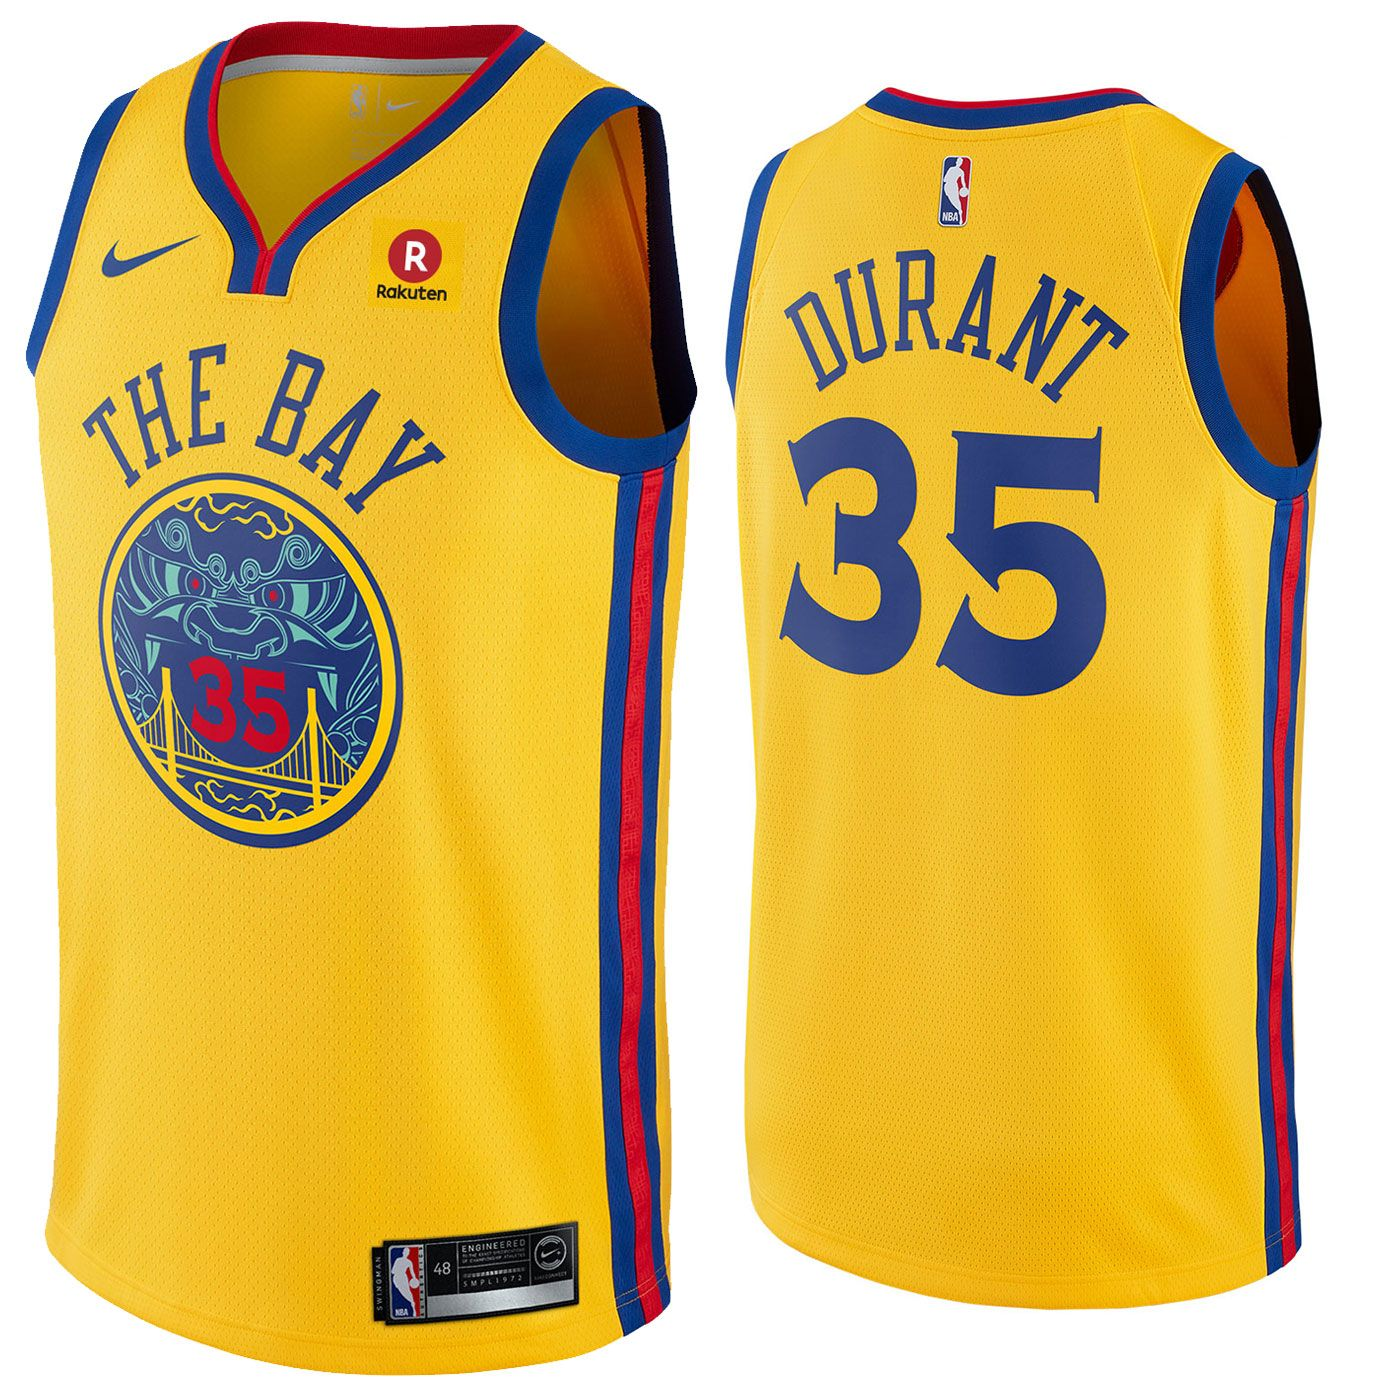 Golden State Warriors Nike Dri-FIT Men s Chinese Heritage Kevin Durant  35  Swingman City Edition Jersey - Gold db051e696